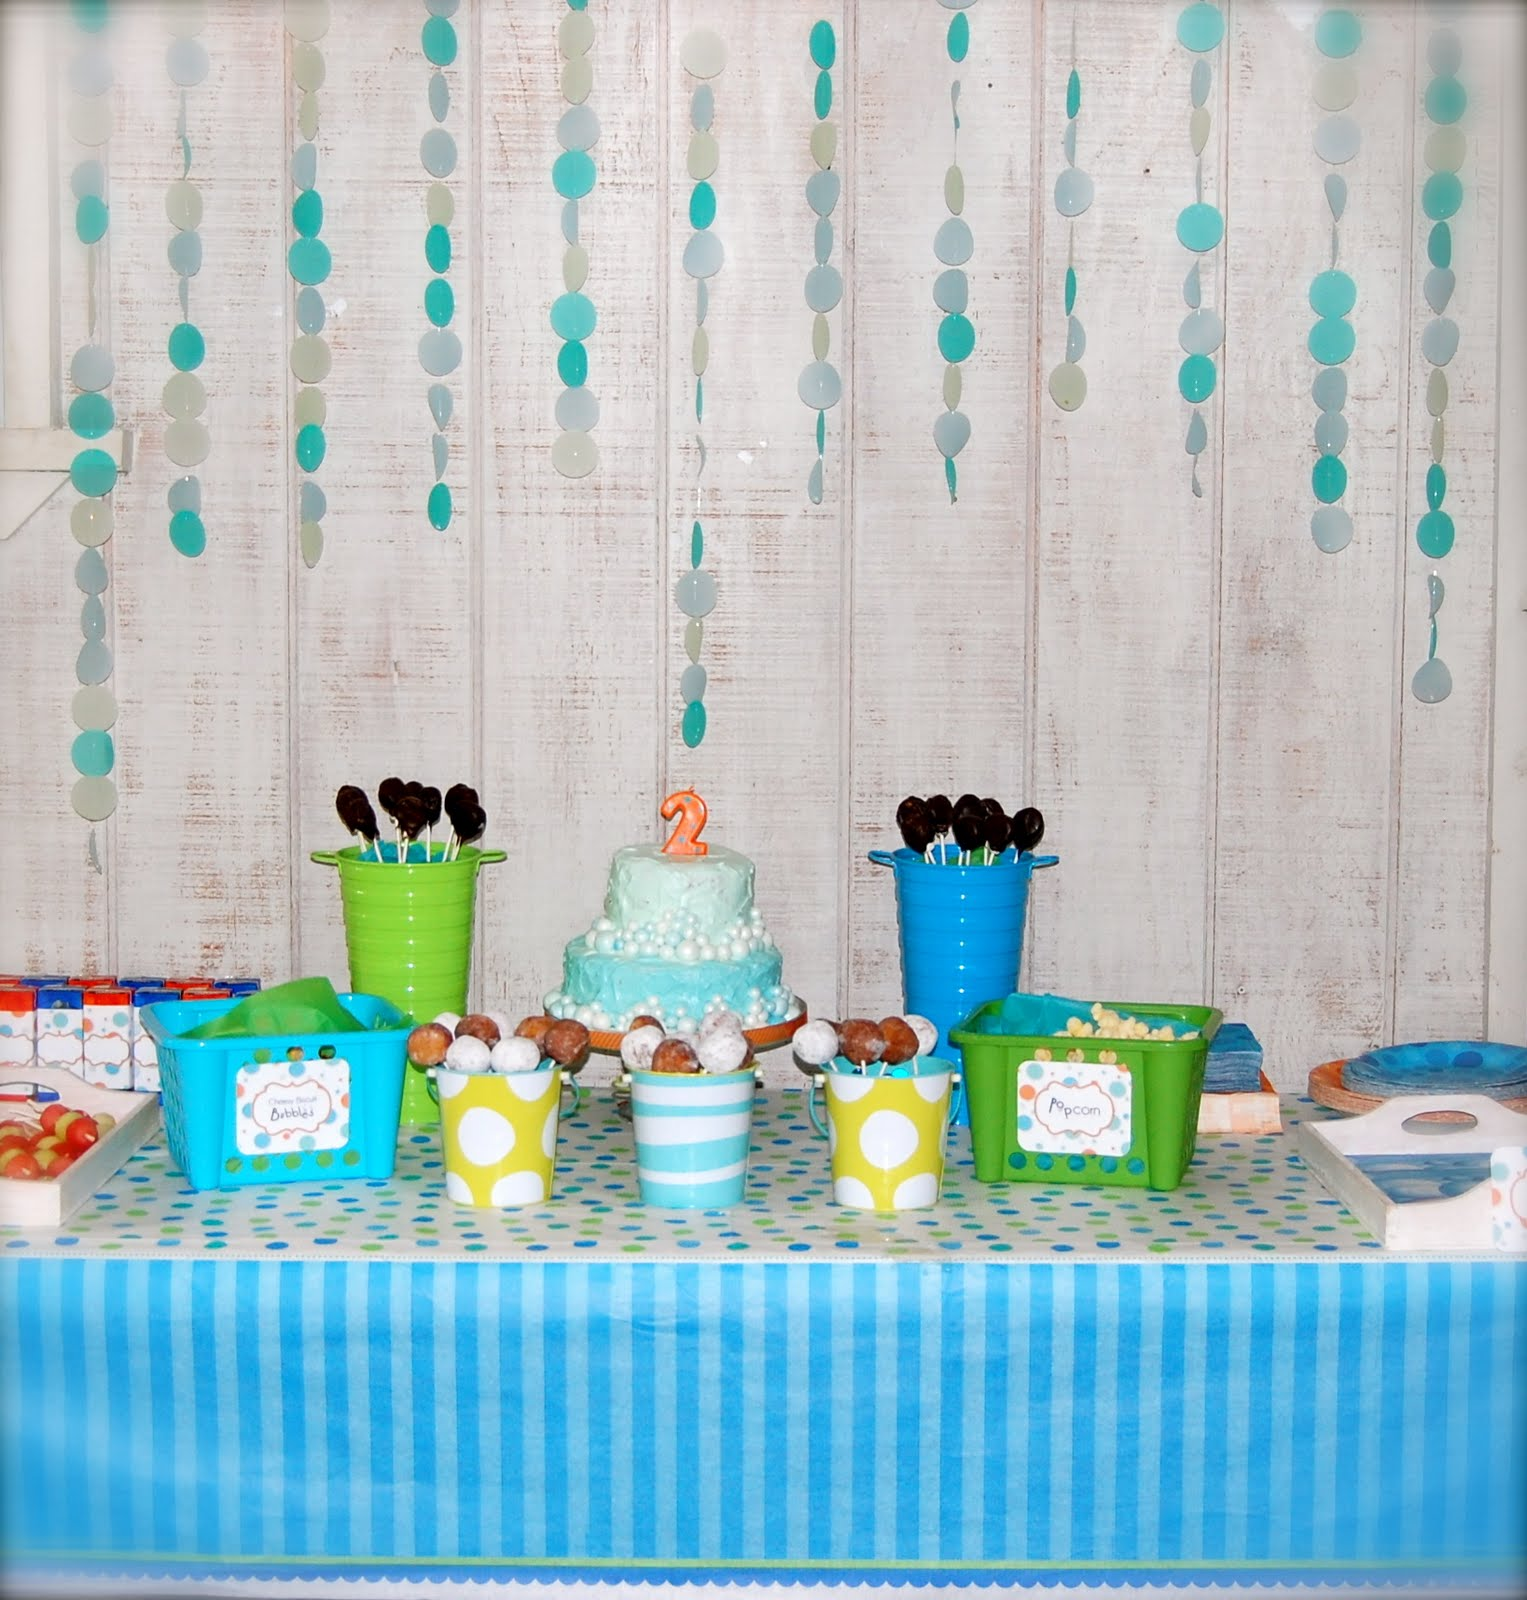 Beth Kruse Custom Creations: bubble party